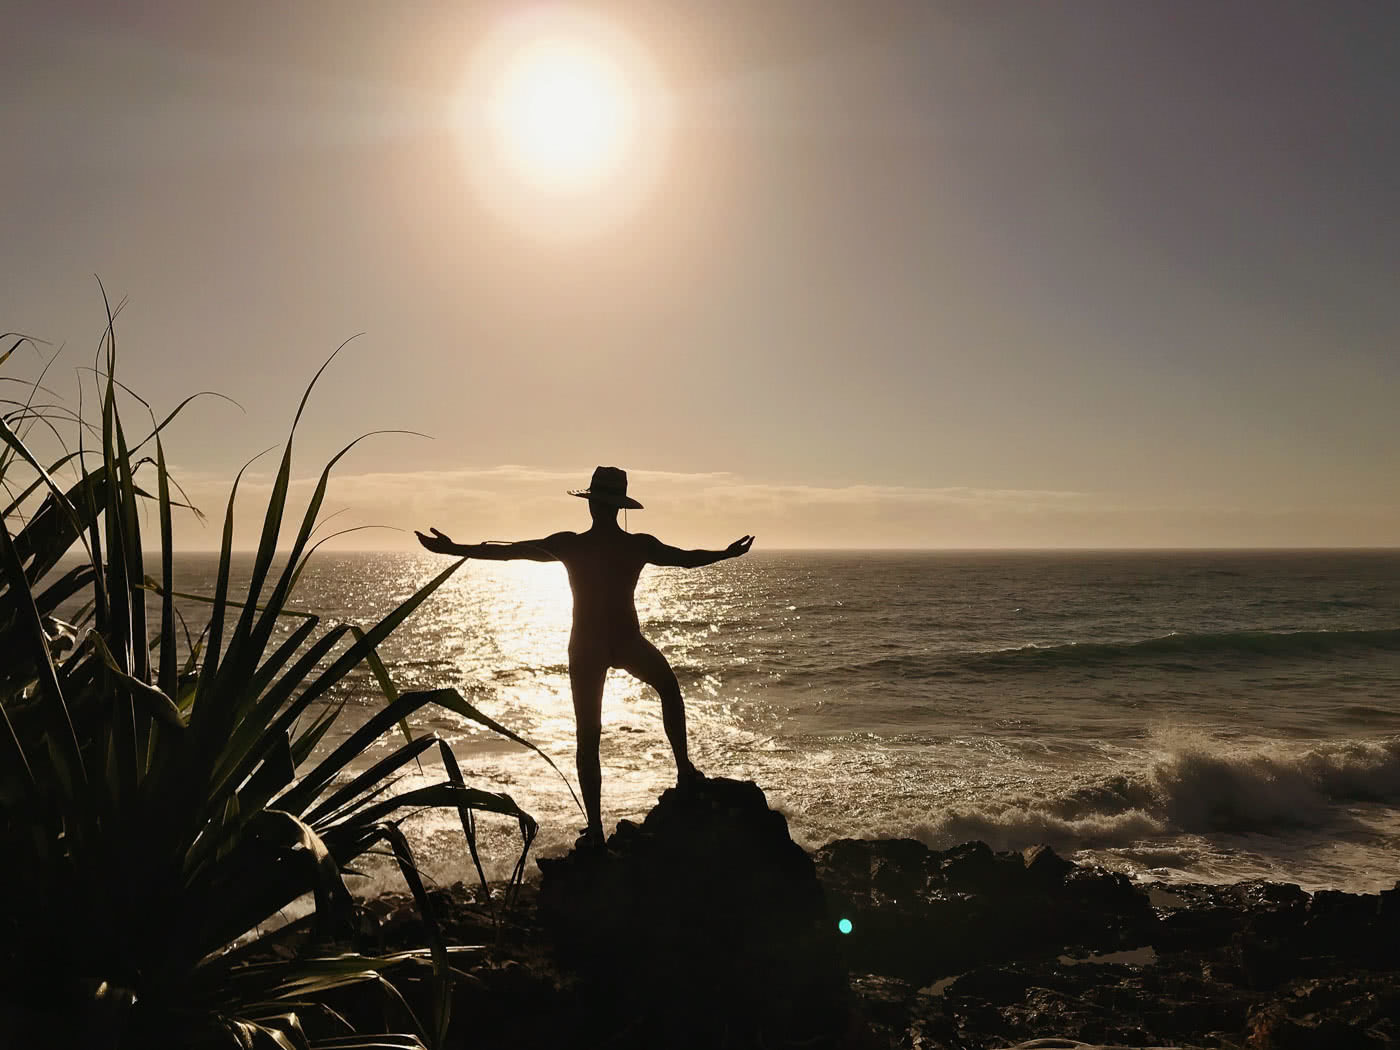 Hiking The Yuraygir Coastal Walk With A Boat On My Back (NSW), photo by Jospeh Faggion, hiking, coastal, packrafting, beach, nsw, sunrise, nude